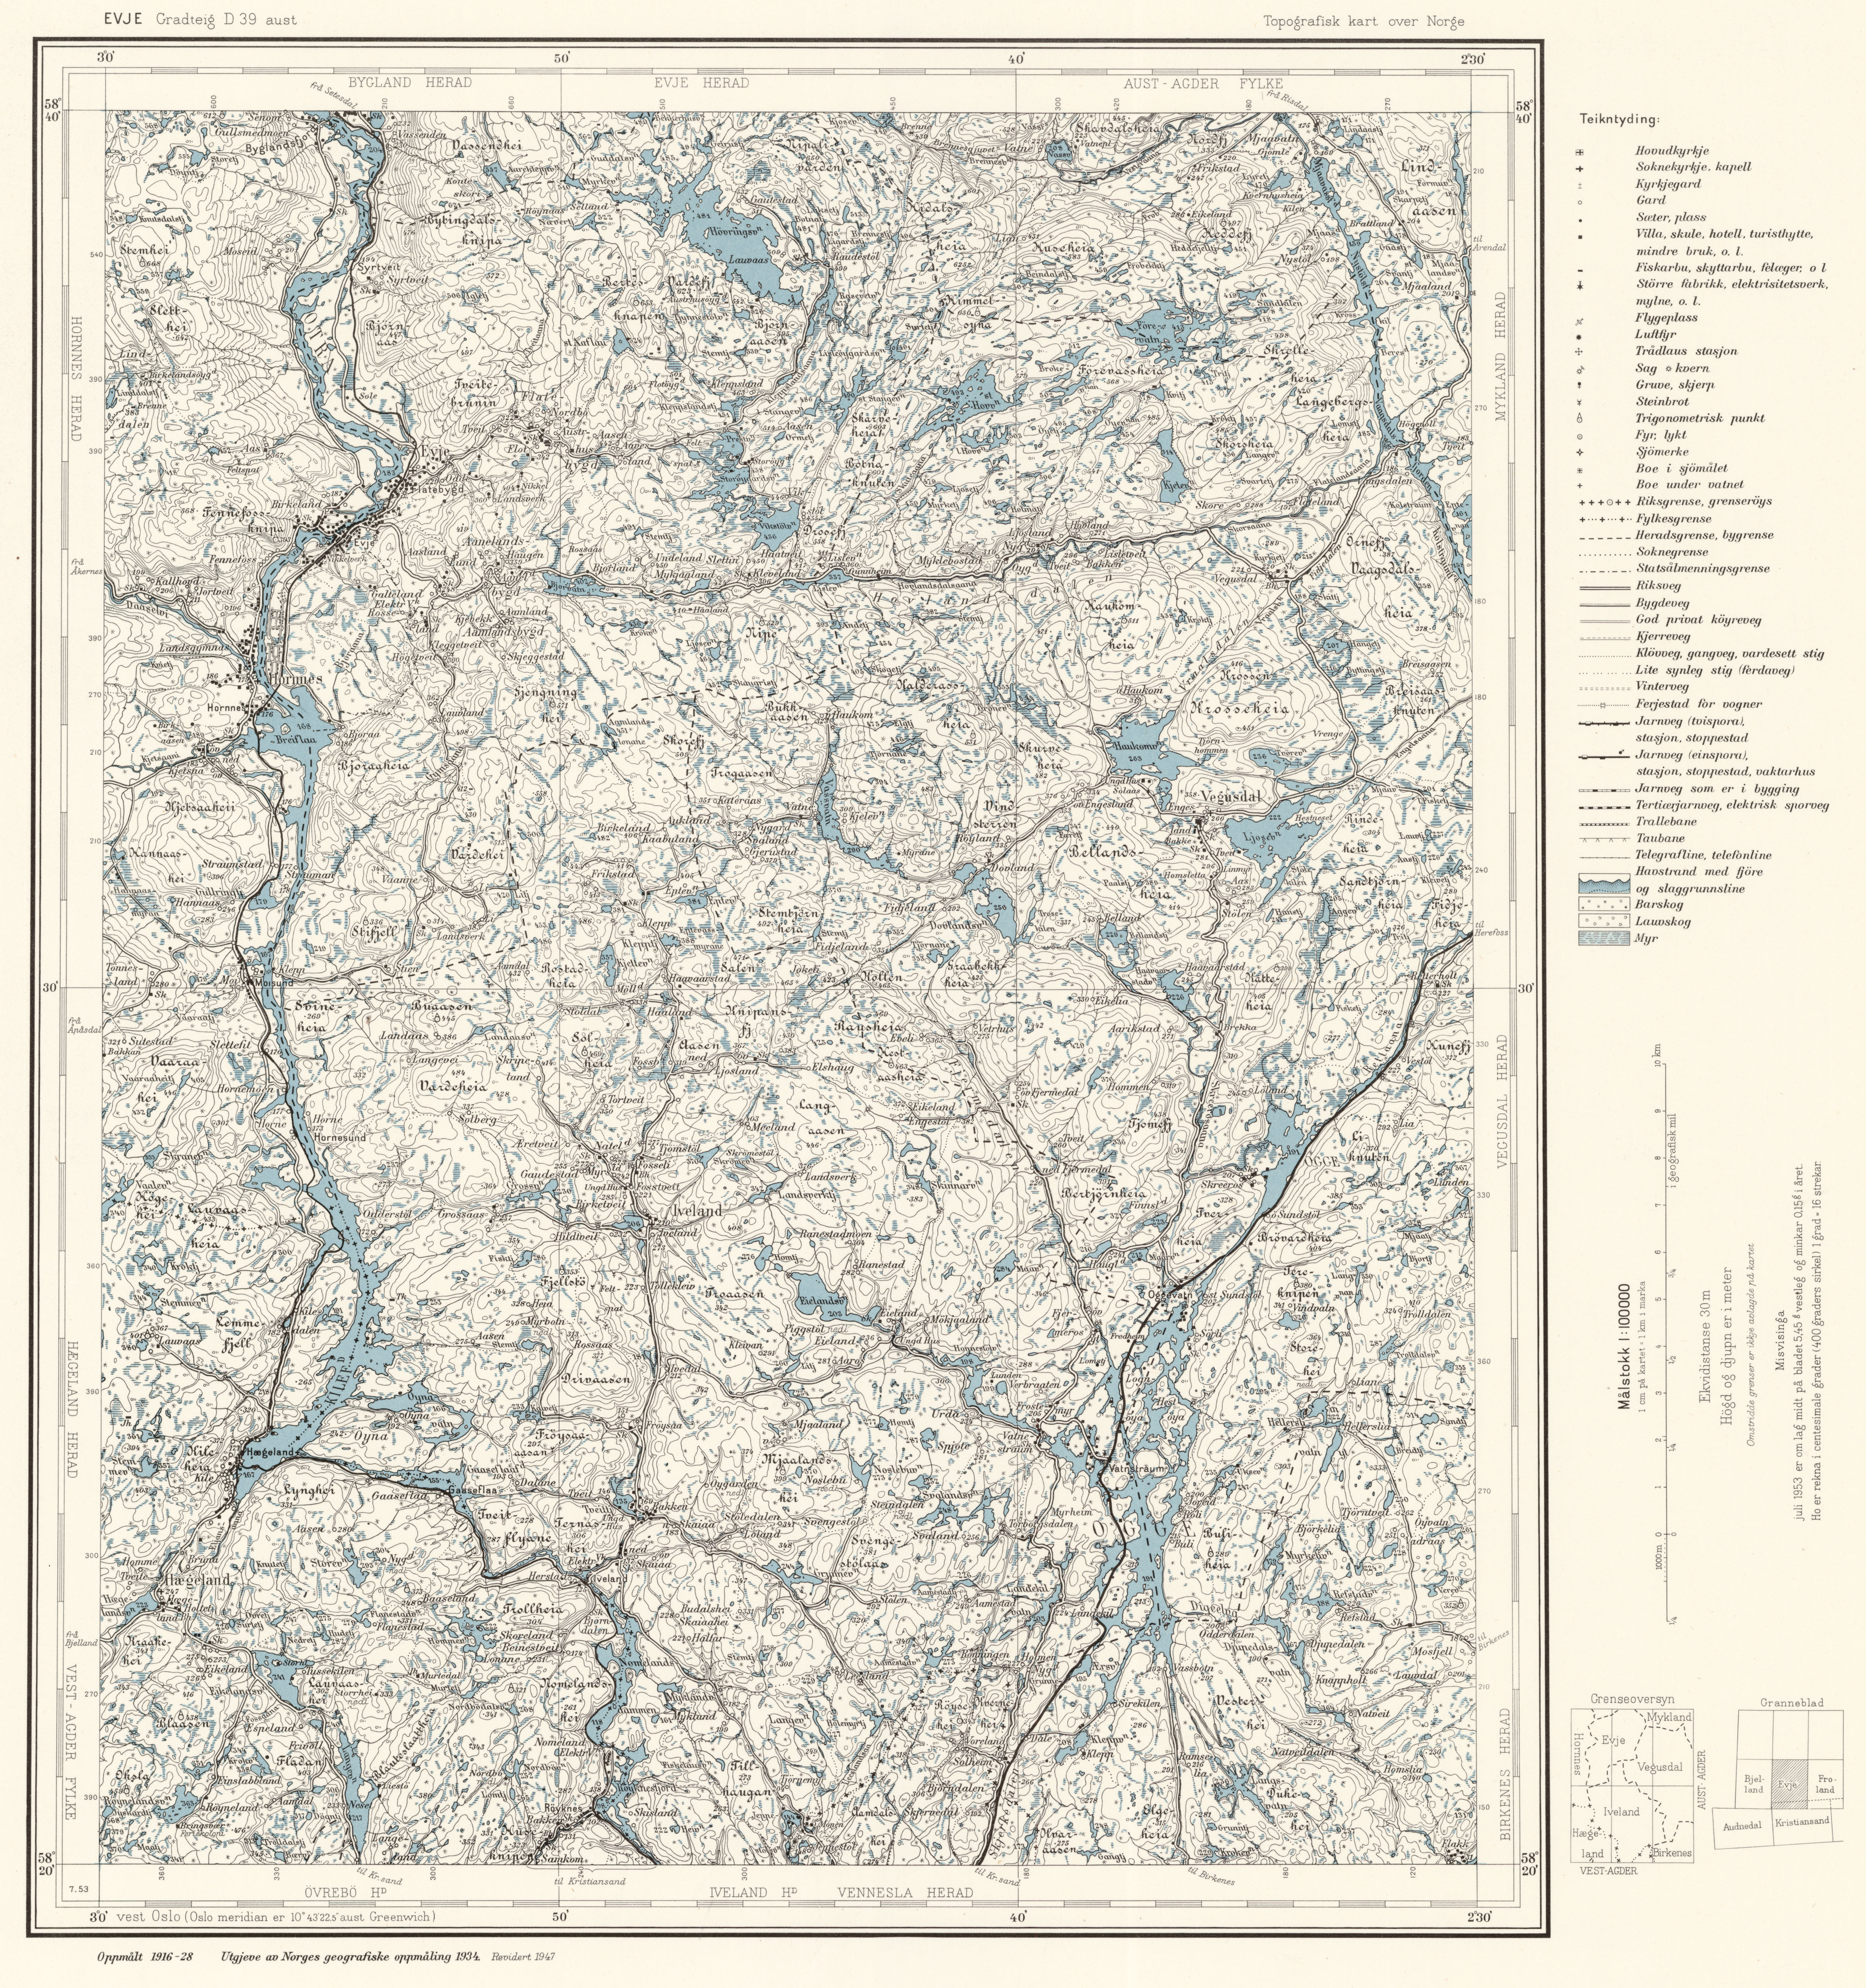 Topographic Map Of Norway.File Topographic Map Of Norway D39 Aust Evje 1947 Jpg Wikimedia